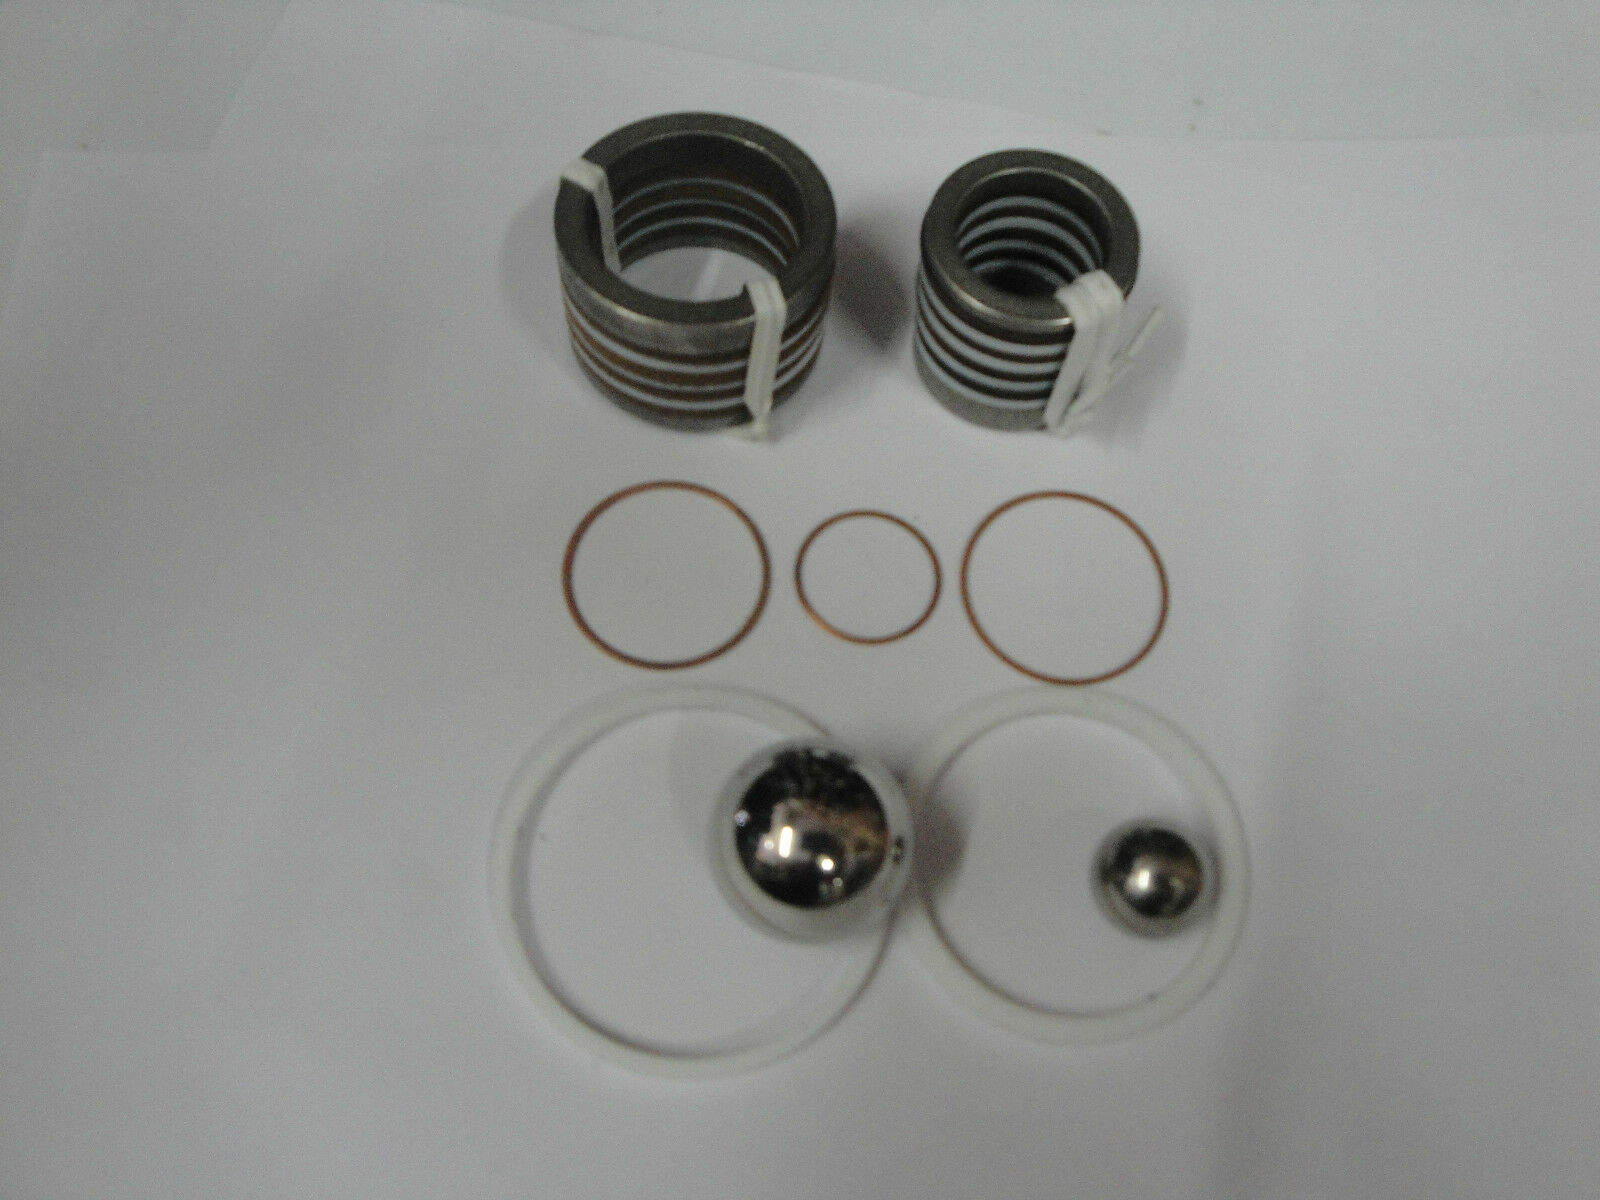 High Quality Aftermarket Binks Repair Kit 41-9656 For Binks Hornet & Wasp